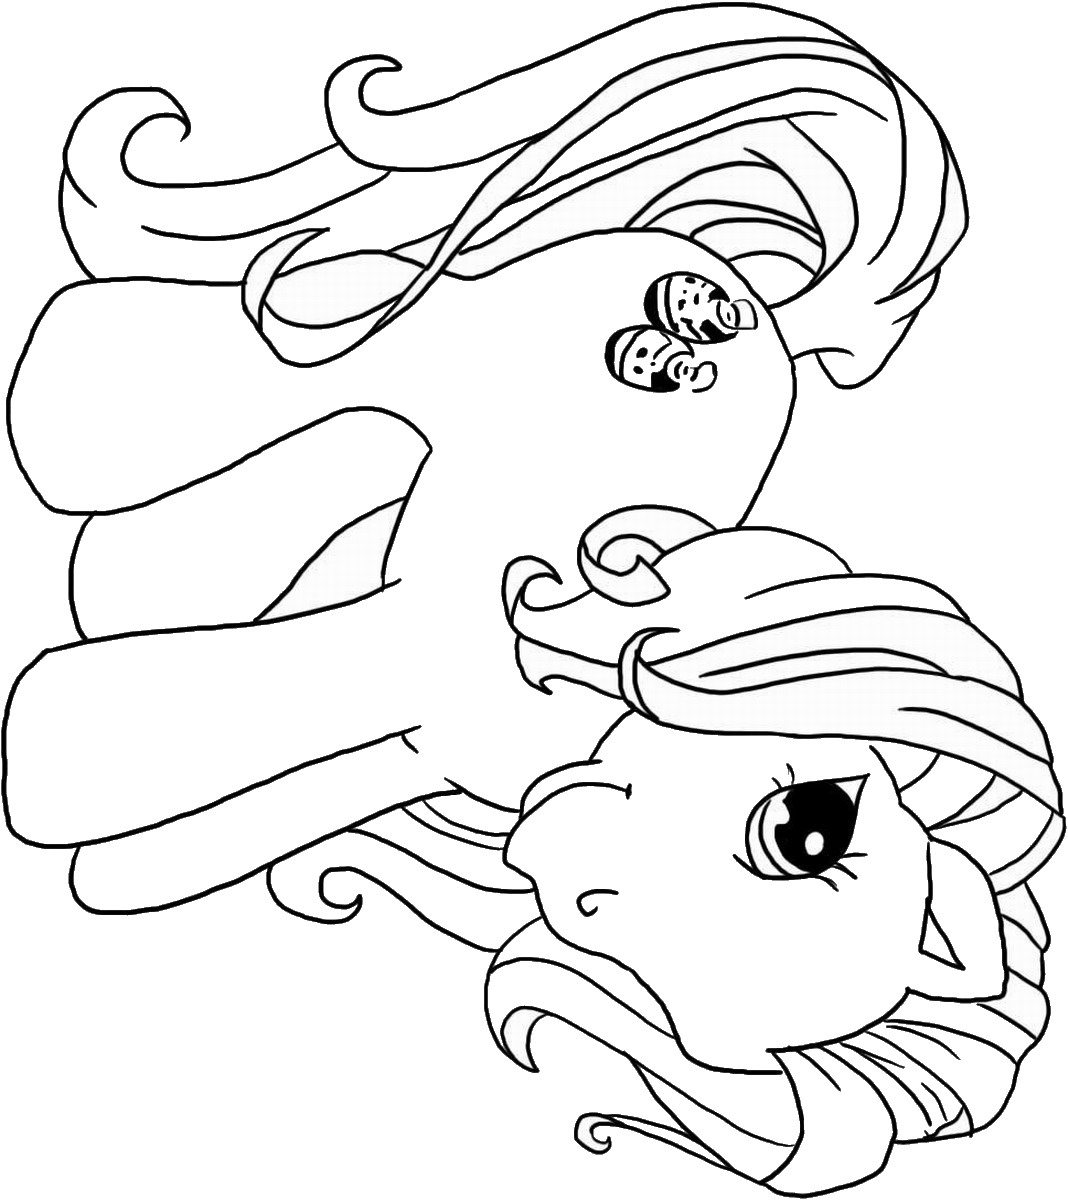 mlp coloring page my little pony coloring page coloring home coloring page mlp 1 1